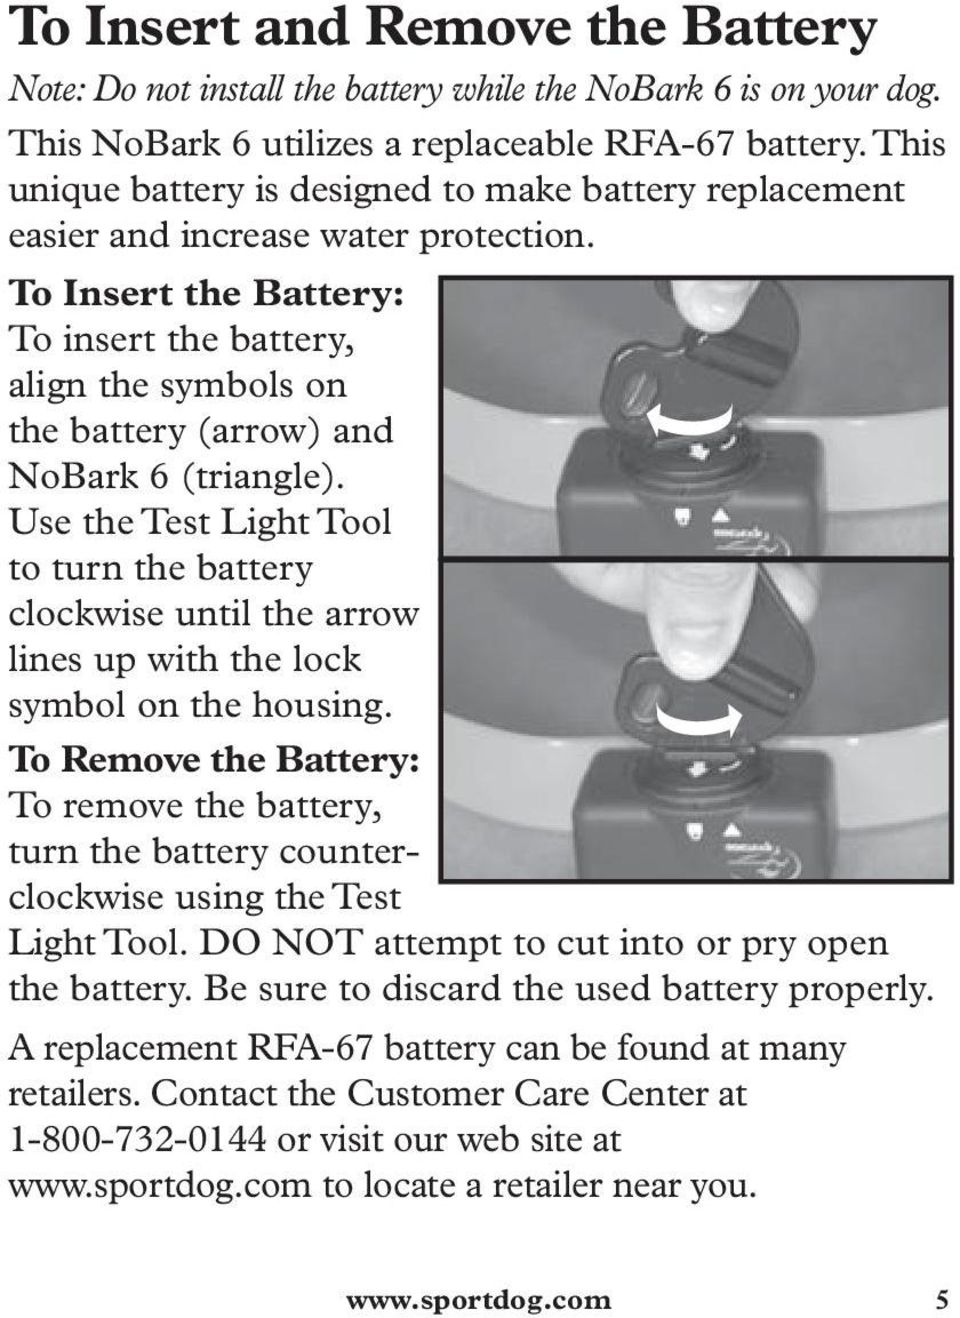 To Insert the Battery: To insert the battery, align the symbols on the battery (arrow) and NoBark 6 (triangle).